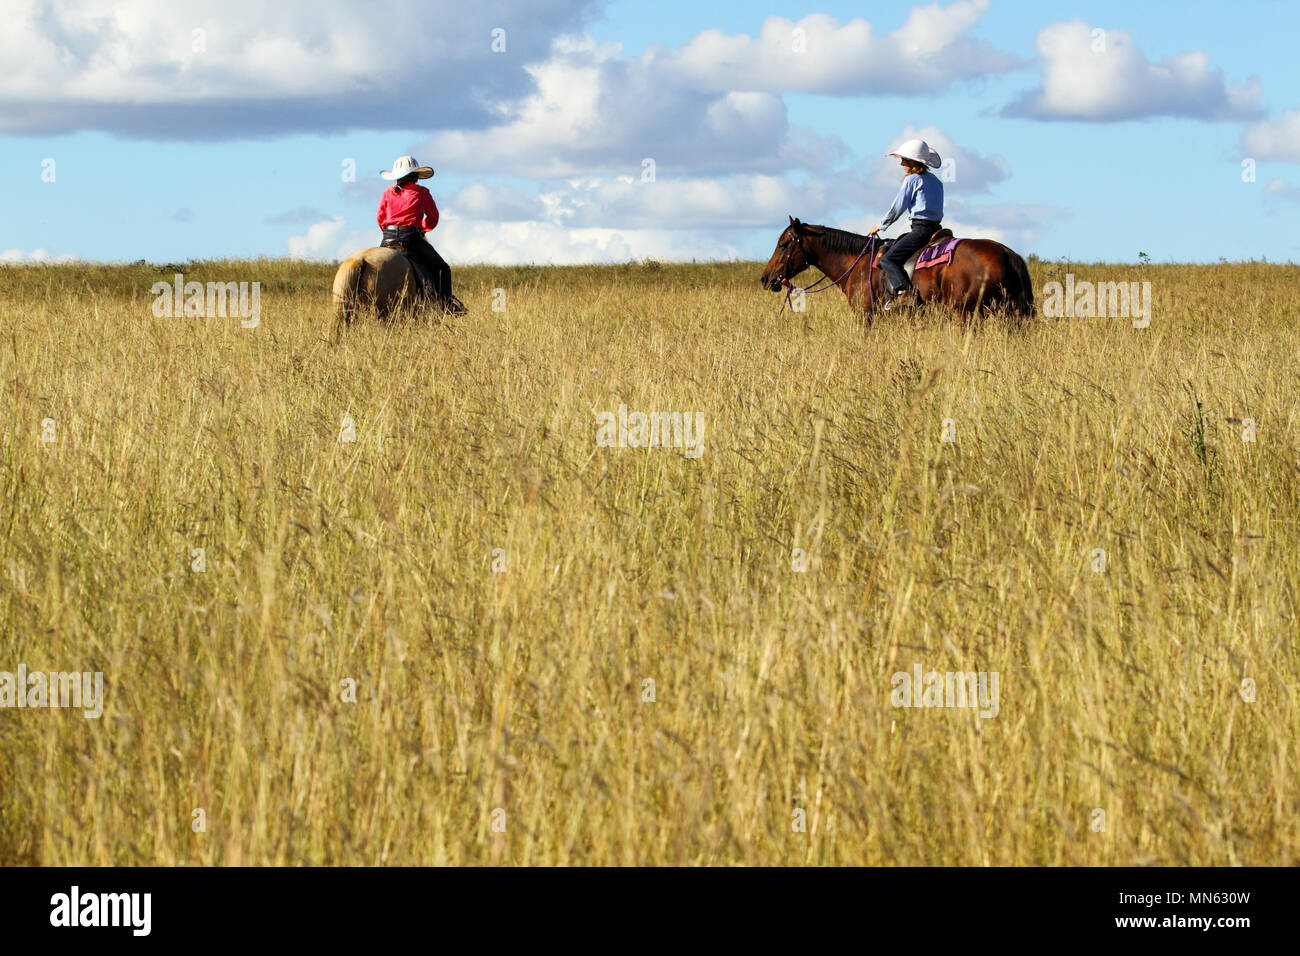 Two pre-teen girls riding horses in tall grass on a farm. - Stock Image